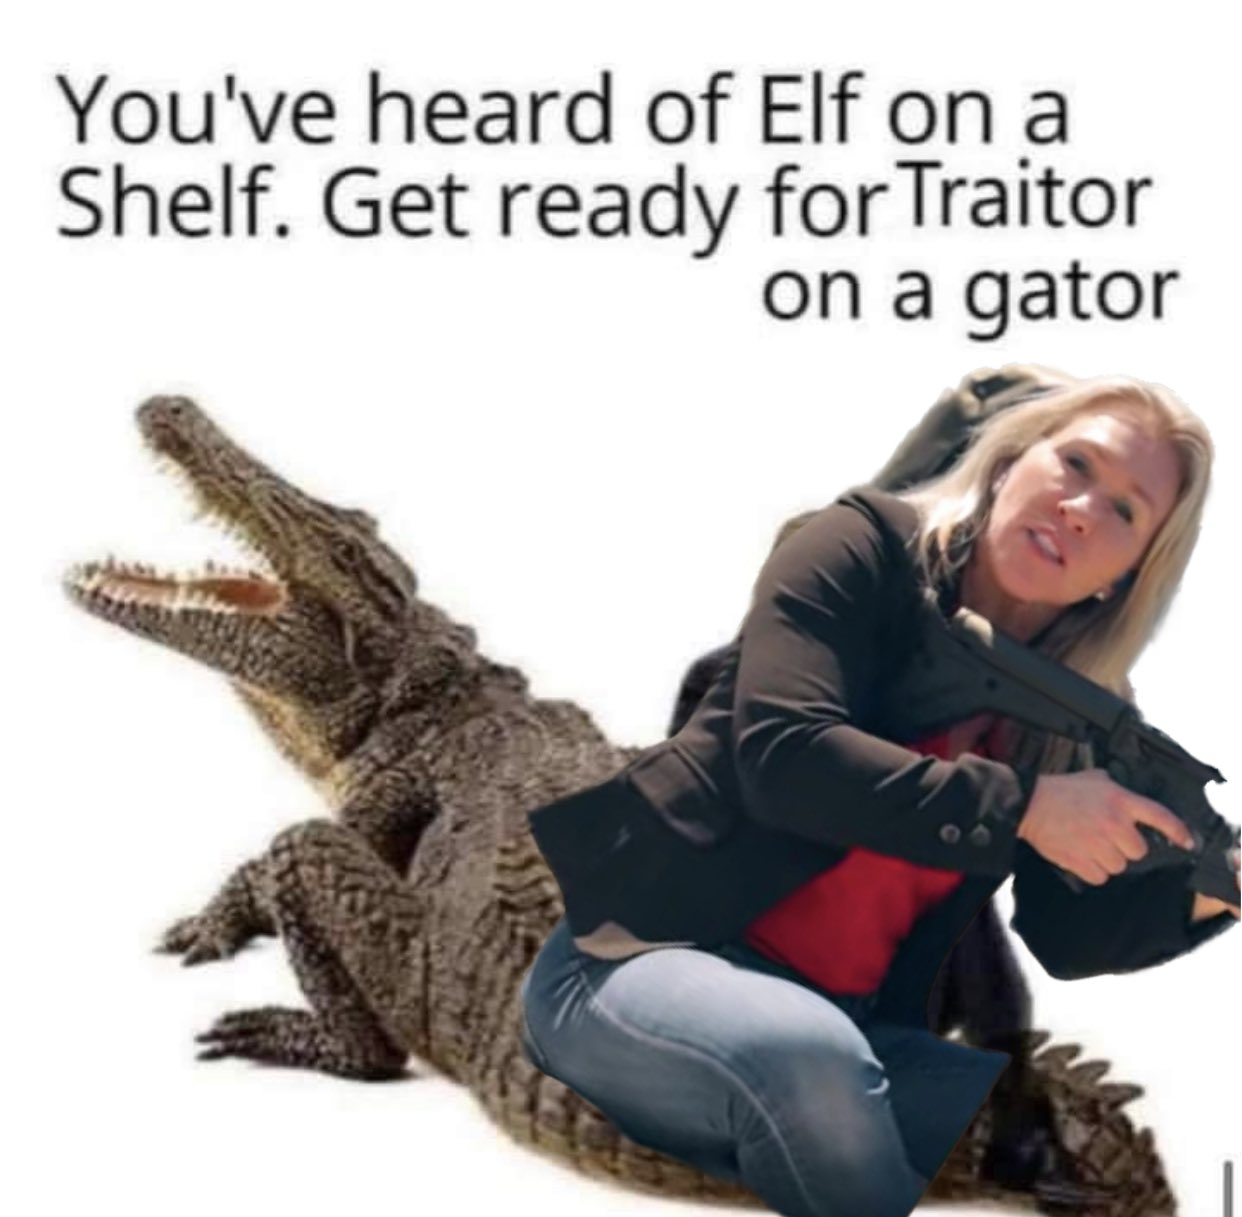 Memes Marjorie Taylor green traitor on a gator